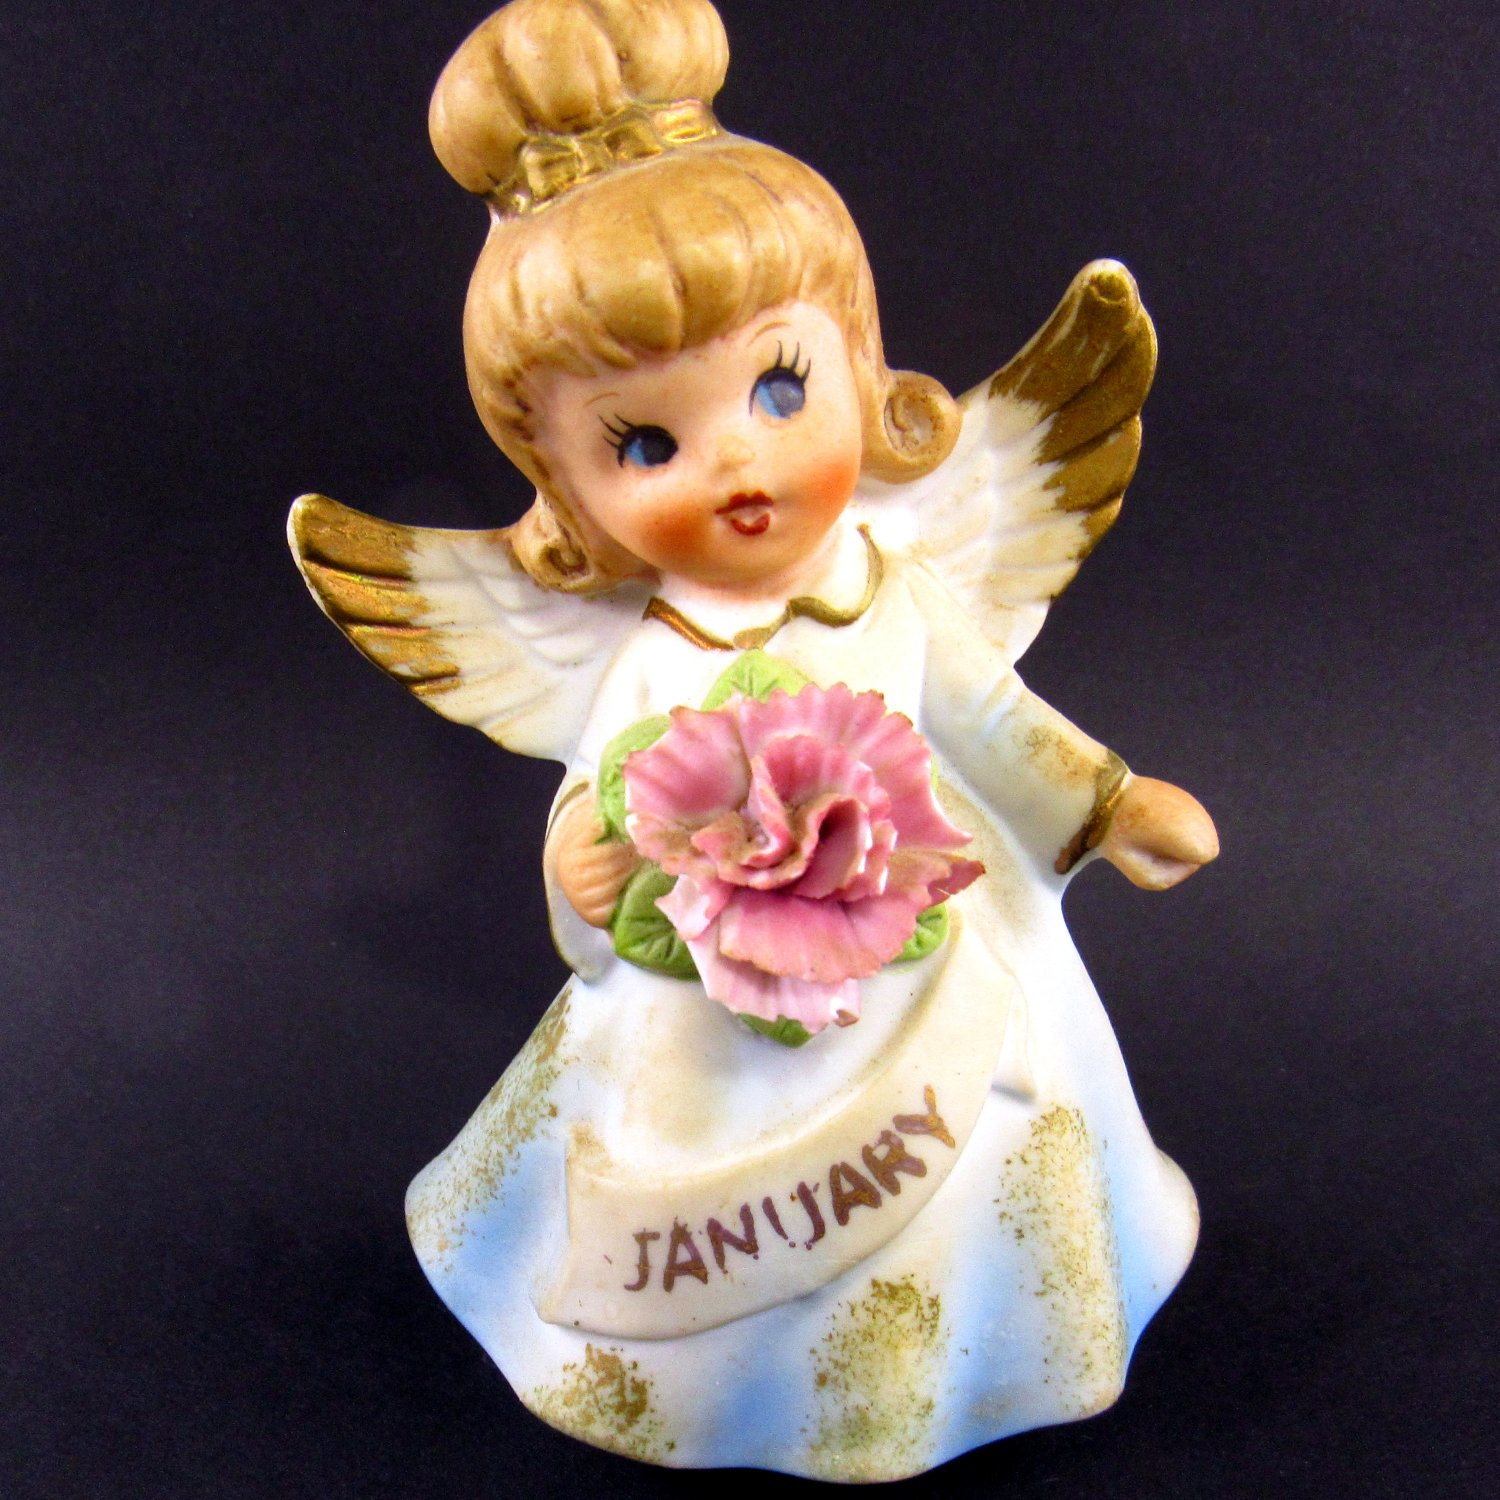 Enesco January Angel Figurine 4 1/2 Inches Gold Painted Wing Tips Original Sticker On Bottom